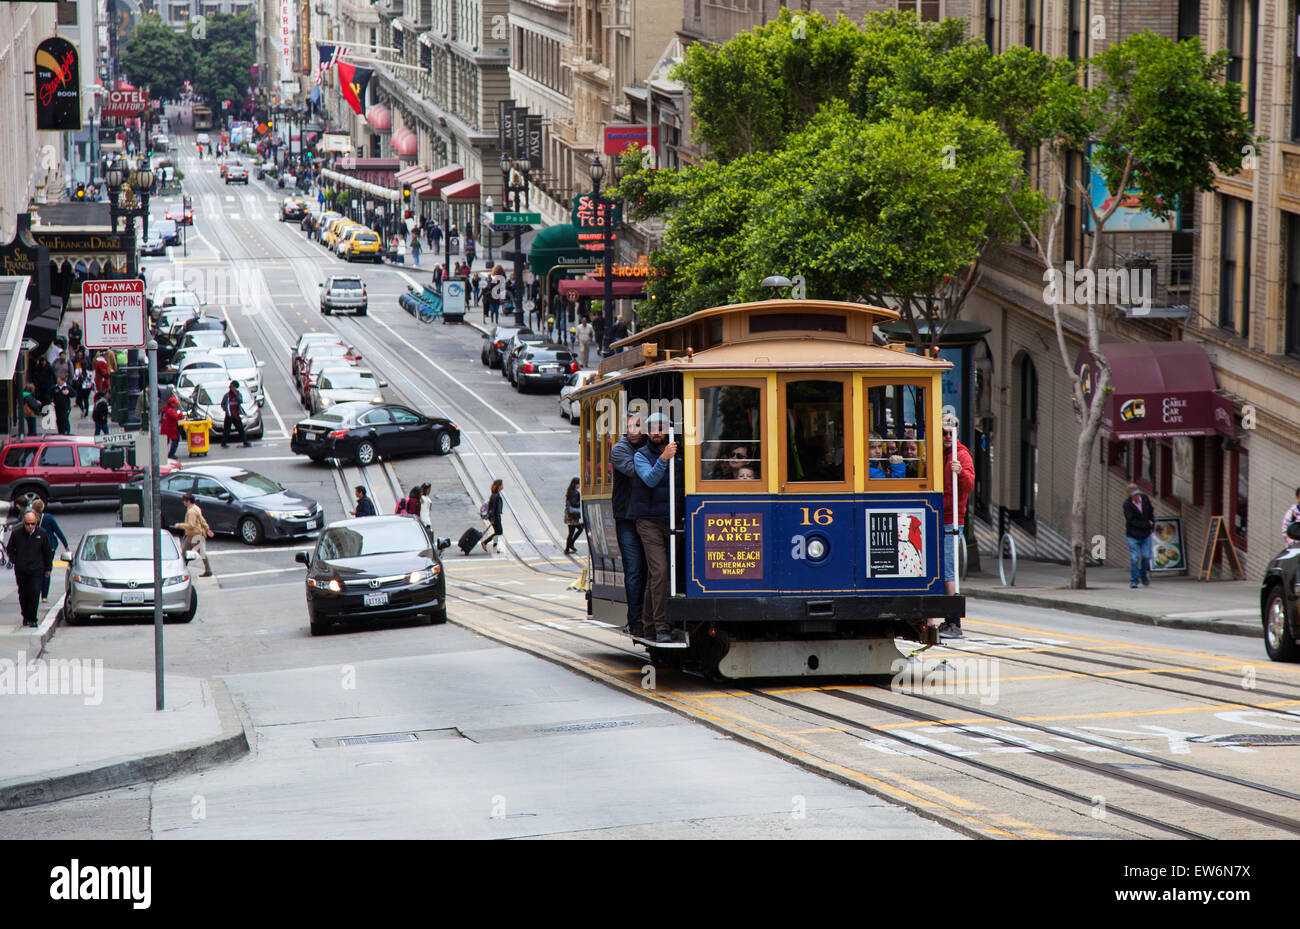 A Cable Car Going up Powell Street in Downtown San Francisco, USA - Stock Image